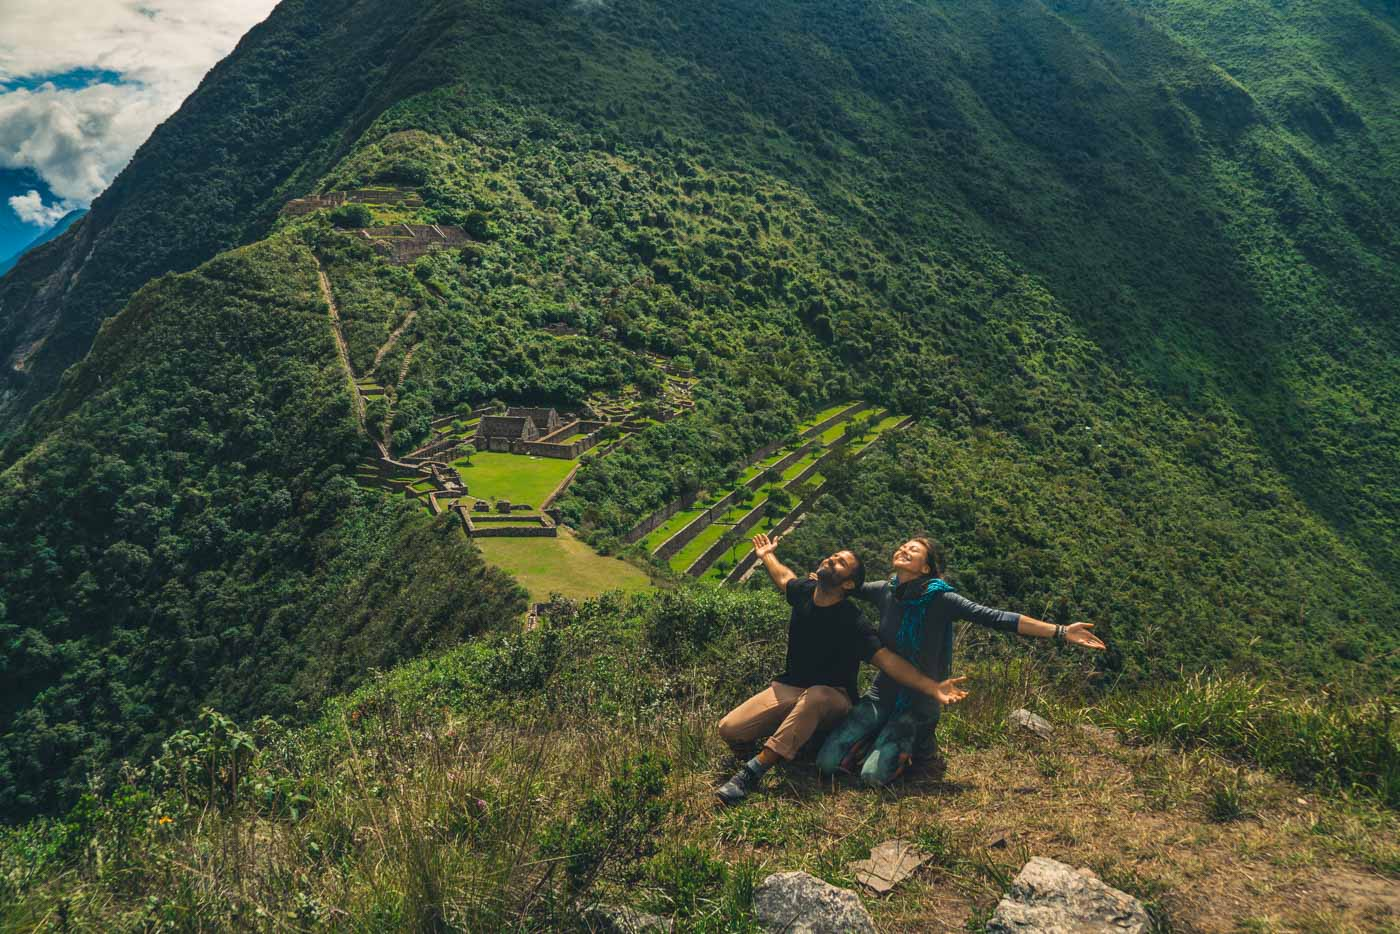 Giving thanks to Pachamama on the ceremonial platform at Choquequirao ruins